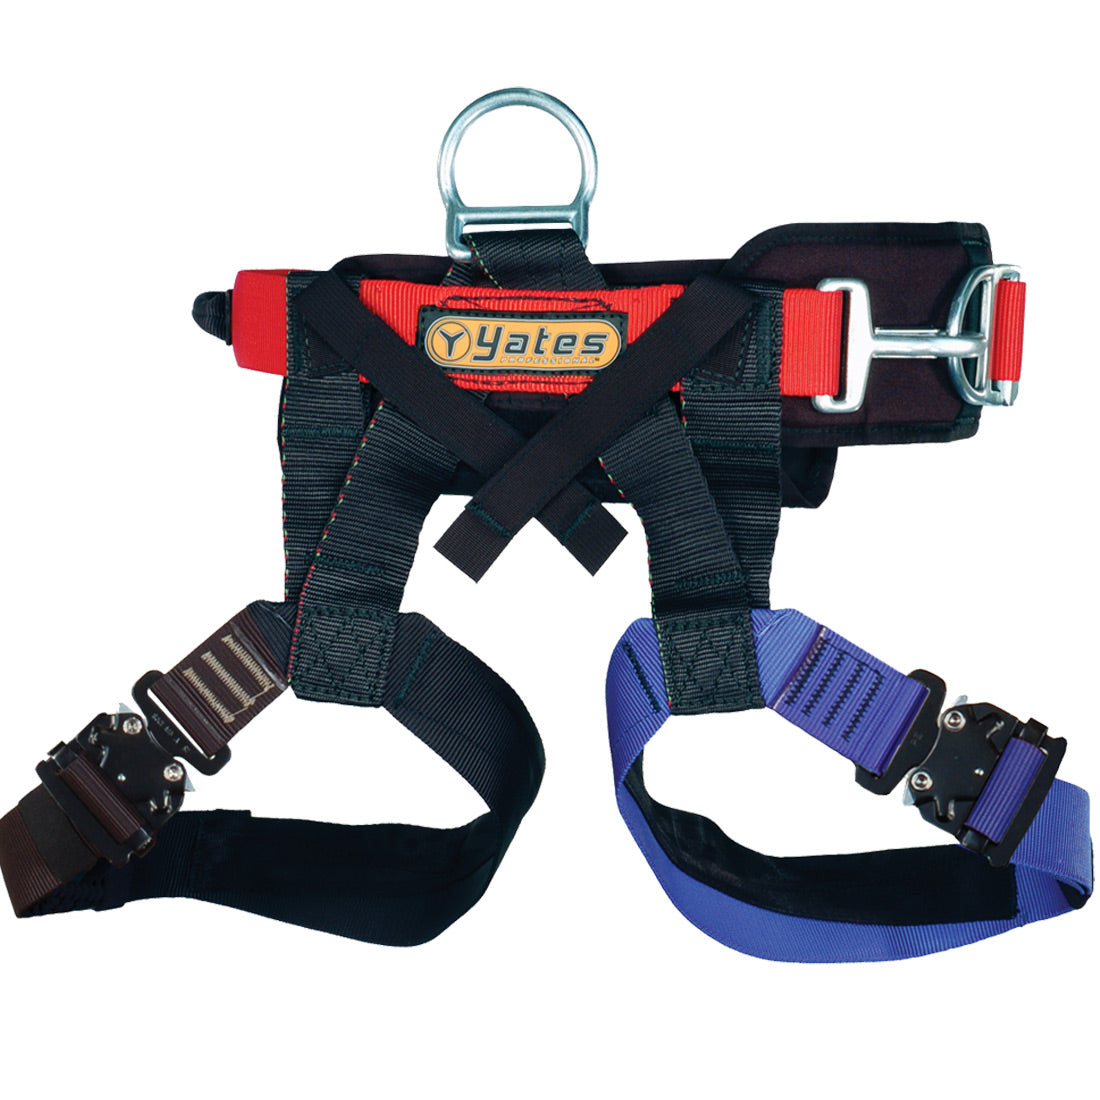 Yates 321 Ladderman / Victim Rescue Seat Harness